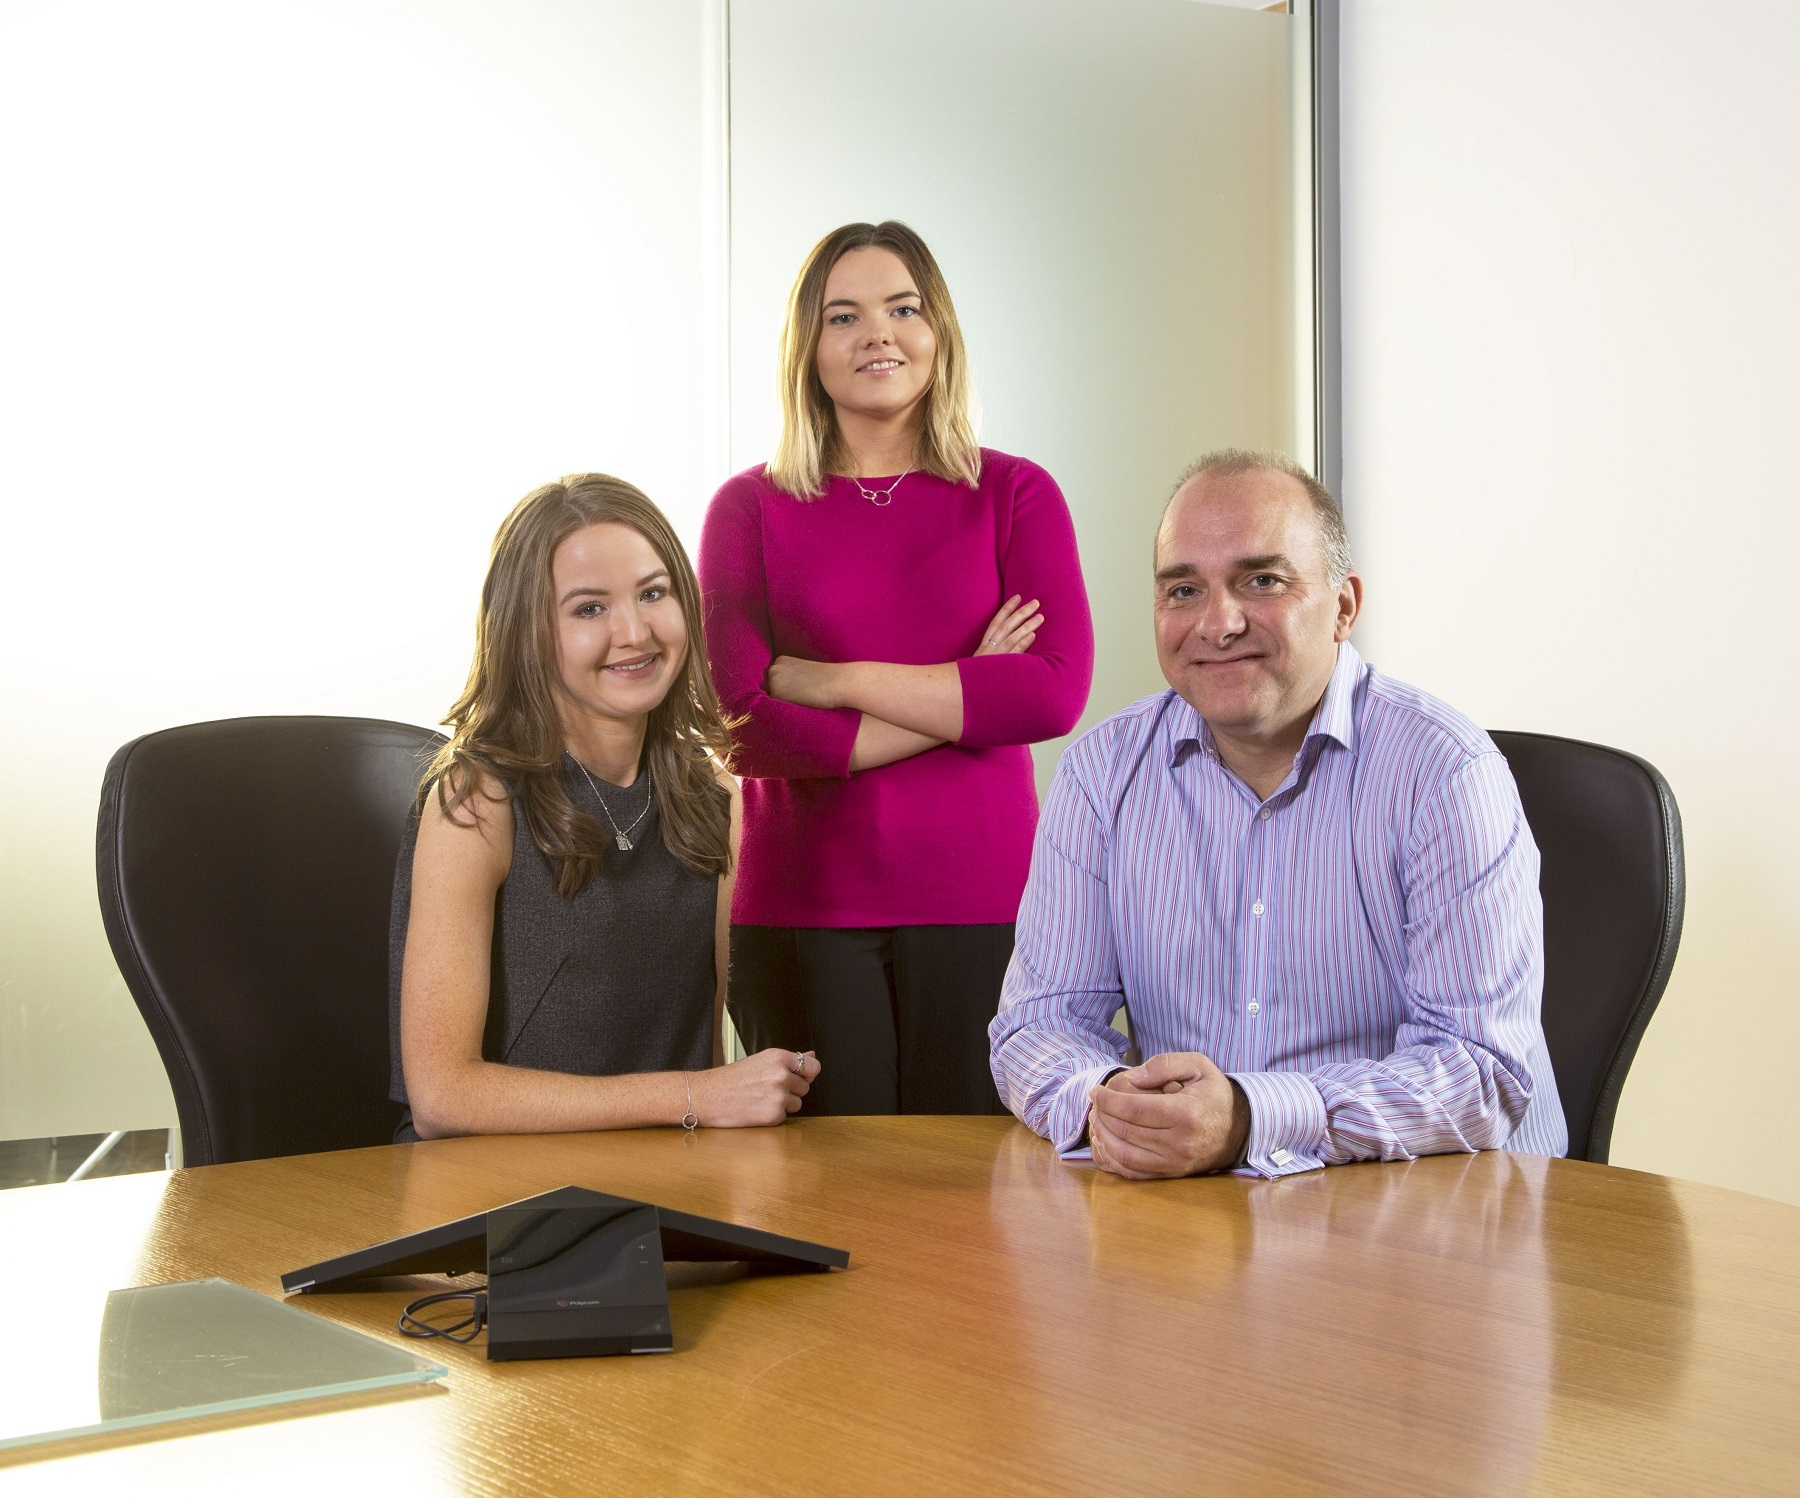 Newcastle law firm, Muckle LLP, has appointed two new trainees. Sarah Addison, Caroline Wood and Jason Wainwright from Muckle LLP. Photo: MIKE SMITH PHOTOGRAPHY